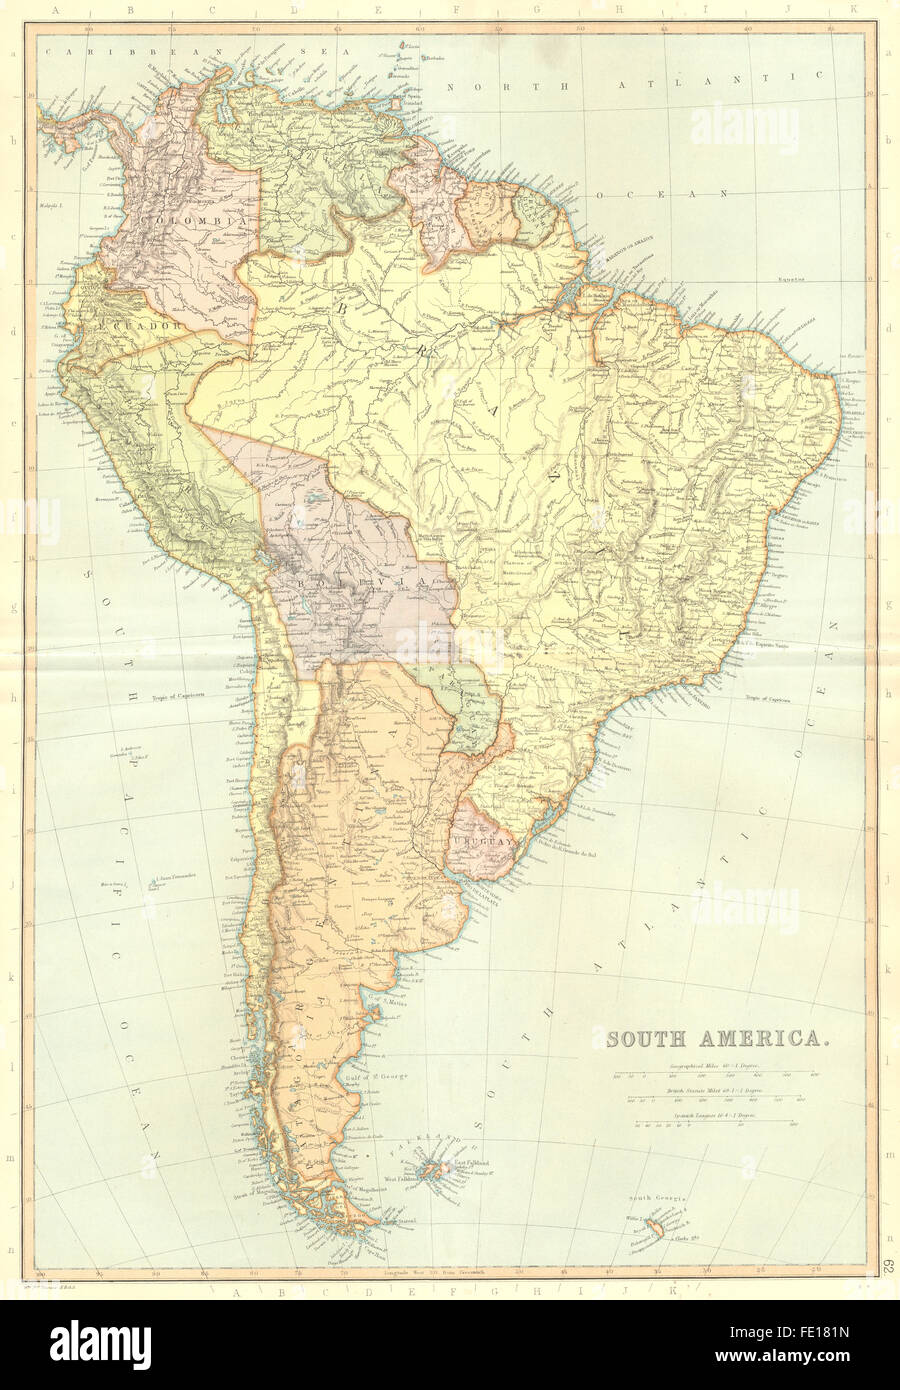 SOUTH AMERICA Brazil Argentina ChileScale Spanish Stock Photo - South america map in spanish